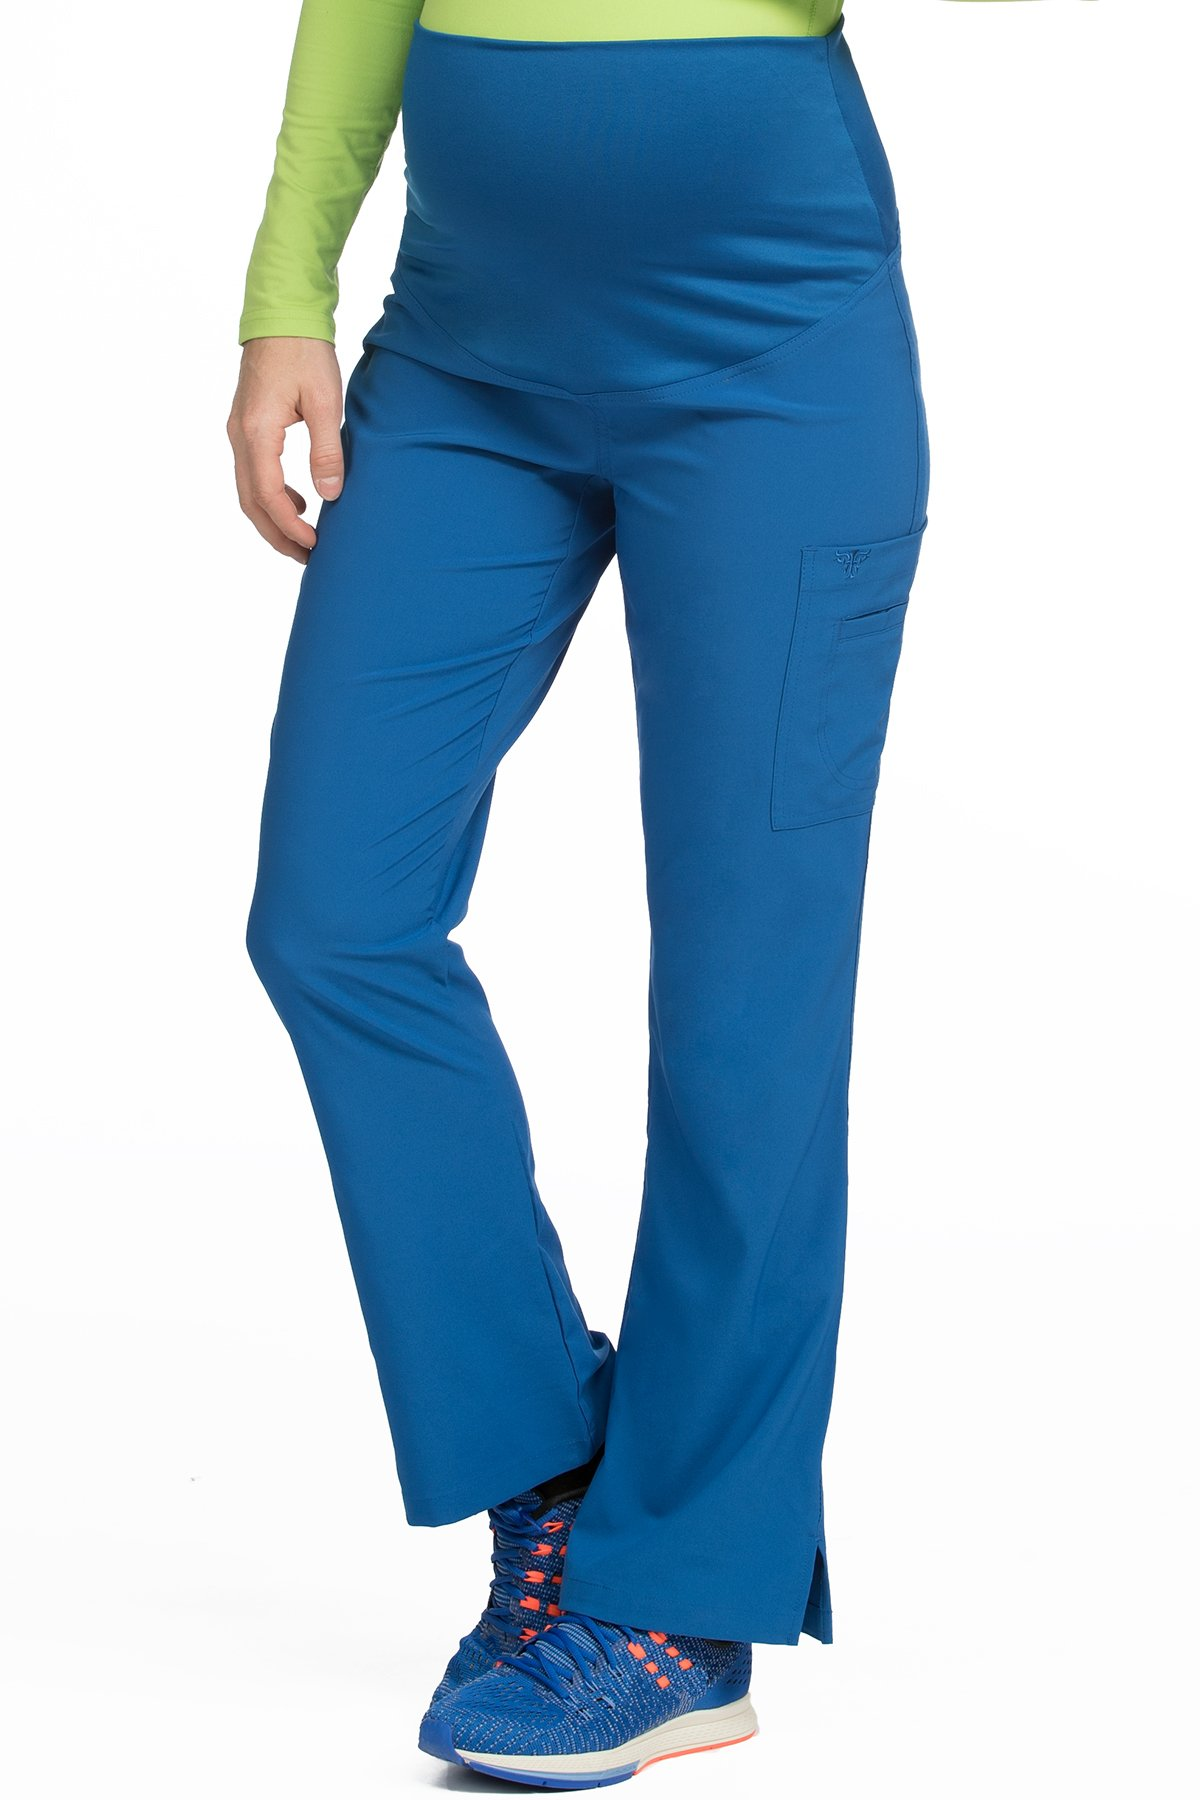 Med Couture Women's Knit Waist Maternity Scrub Pant, Royal, XXX-Large